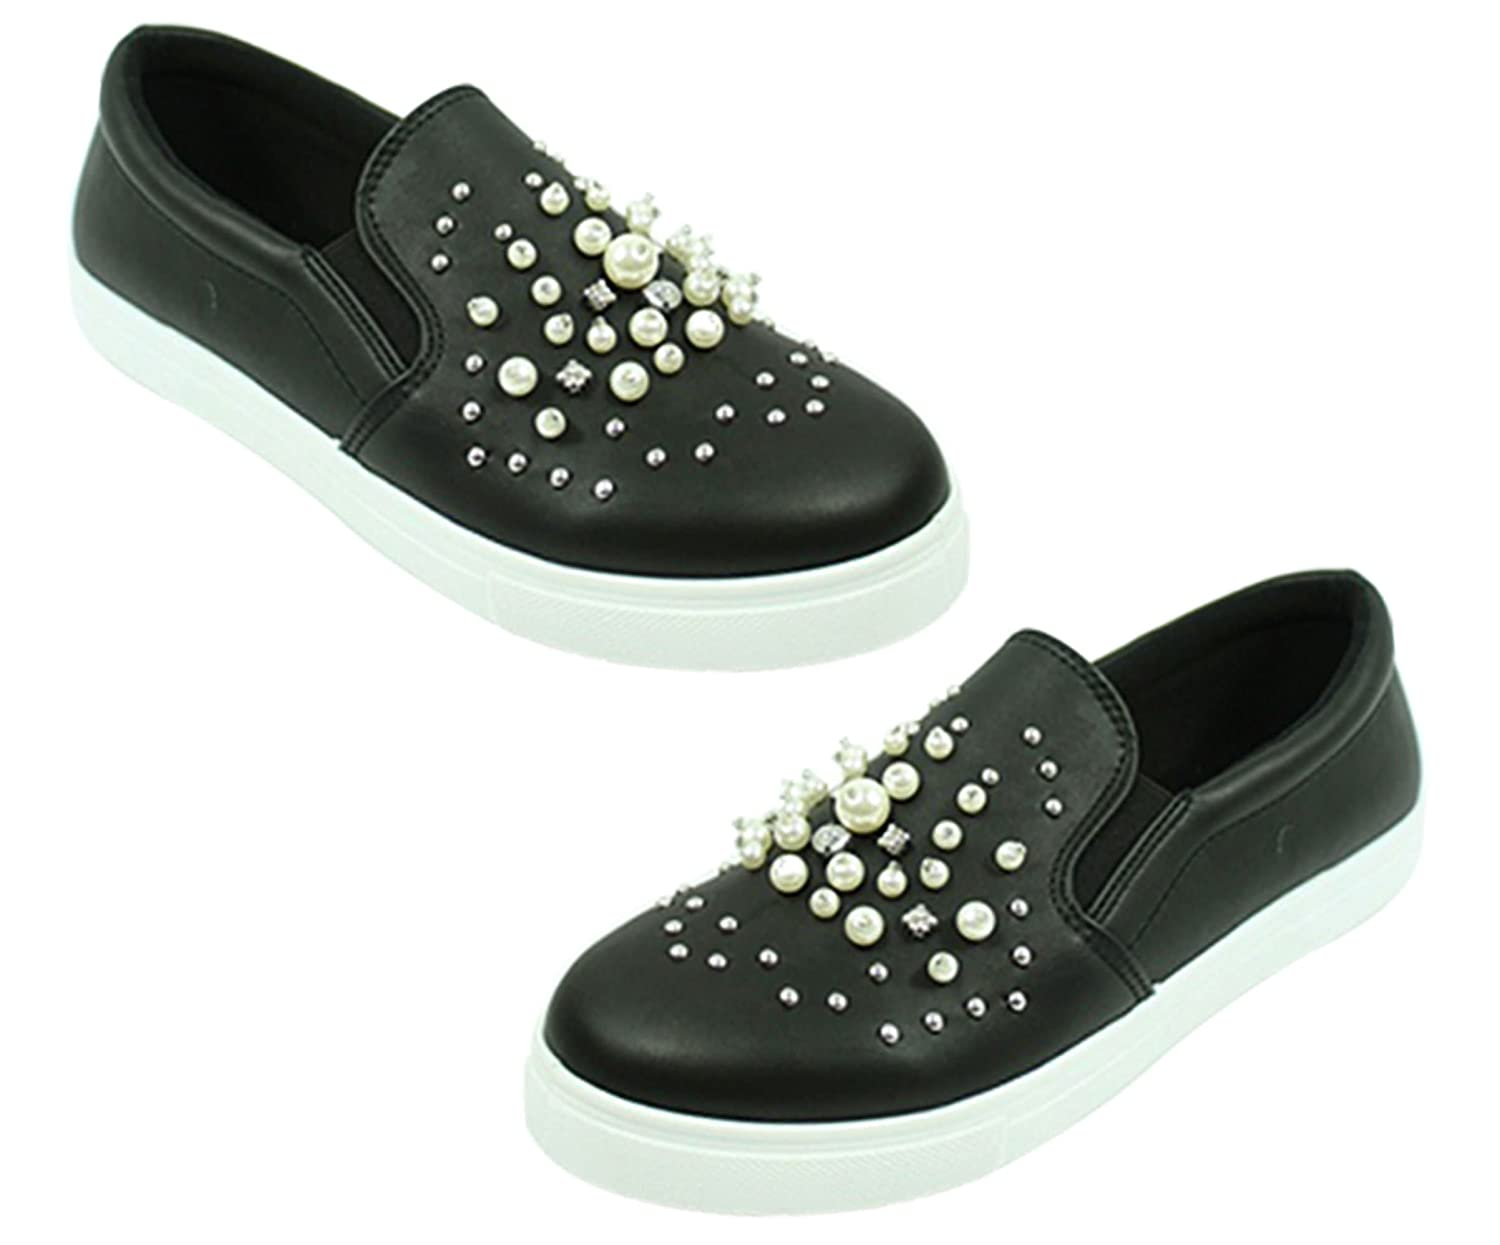 TravelNut Back to School Sale Kenna Classic Slip On Casual Skateboard Sneakers for Women (Assorted Colors) B079KSZQPZ 6.5 M US Pearl Kenna Black